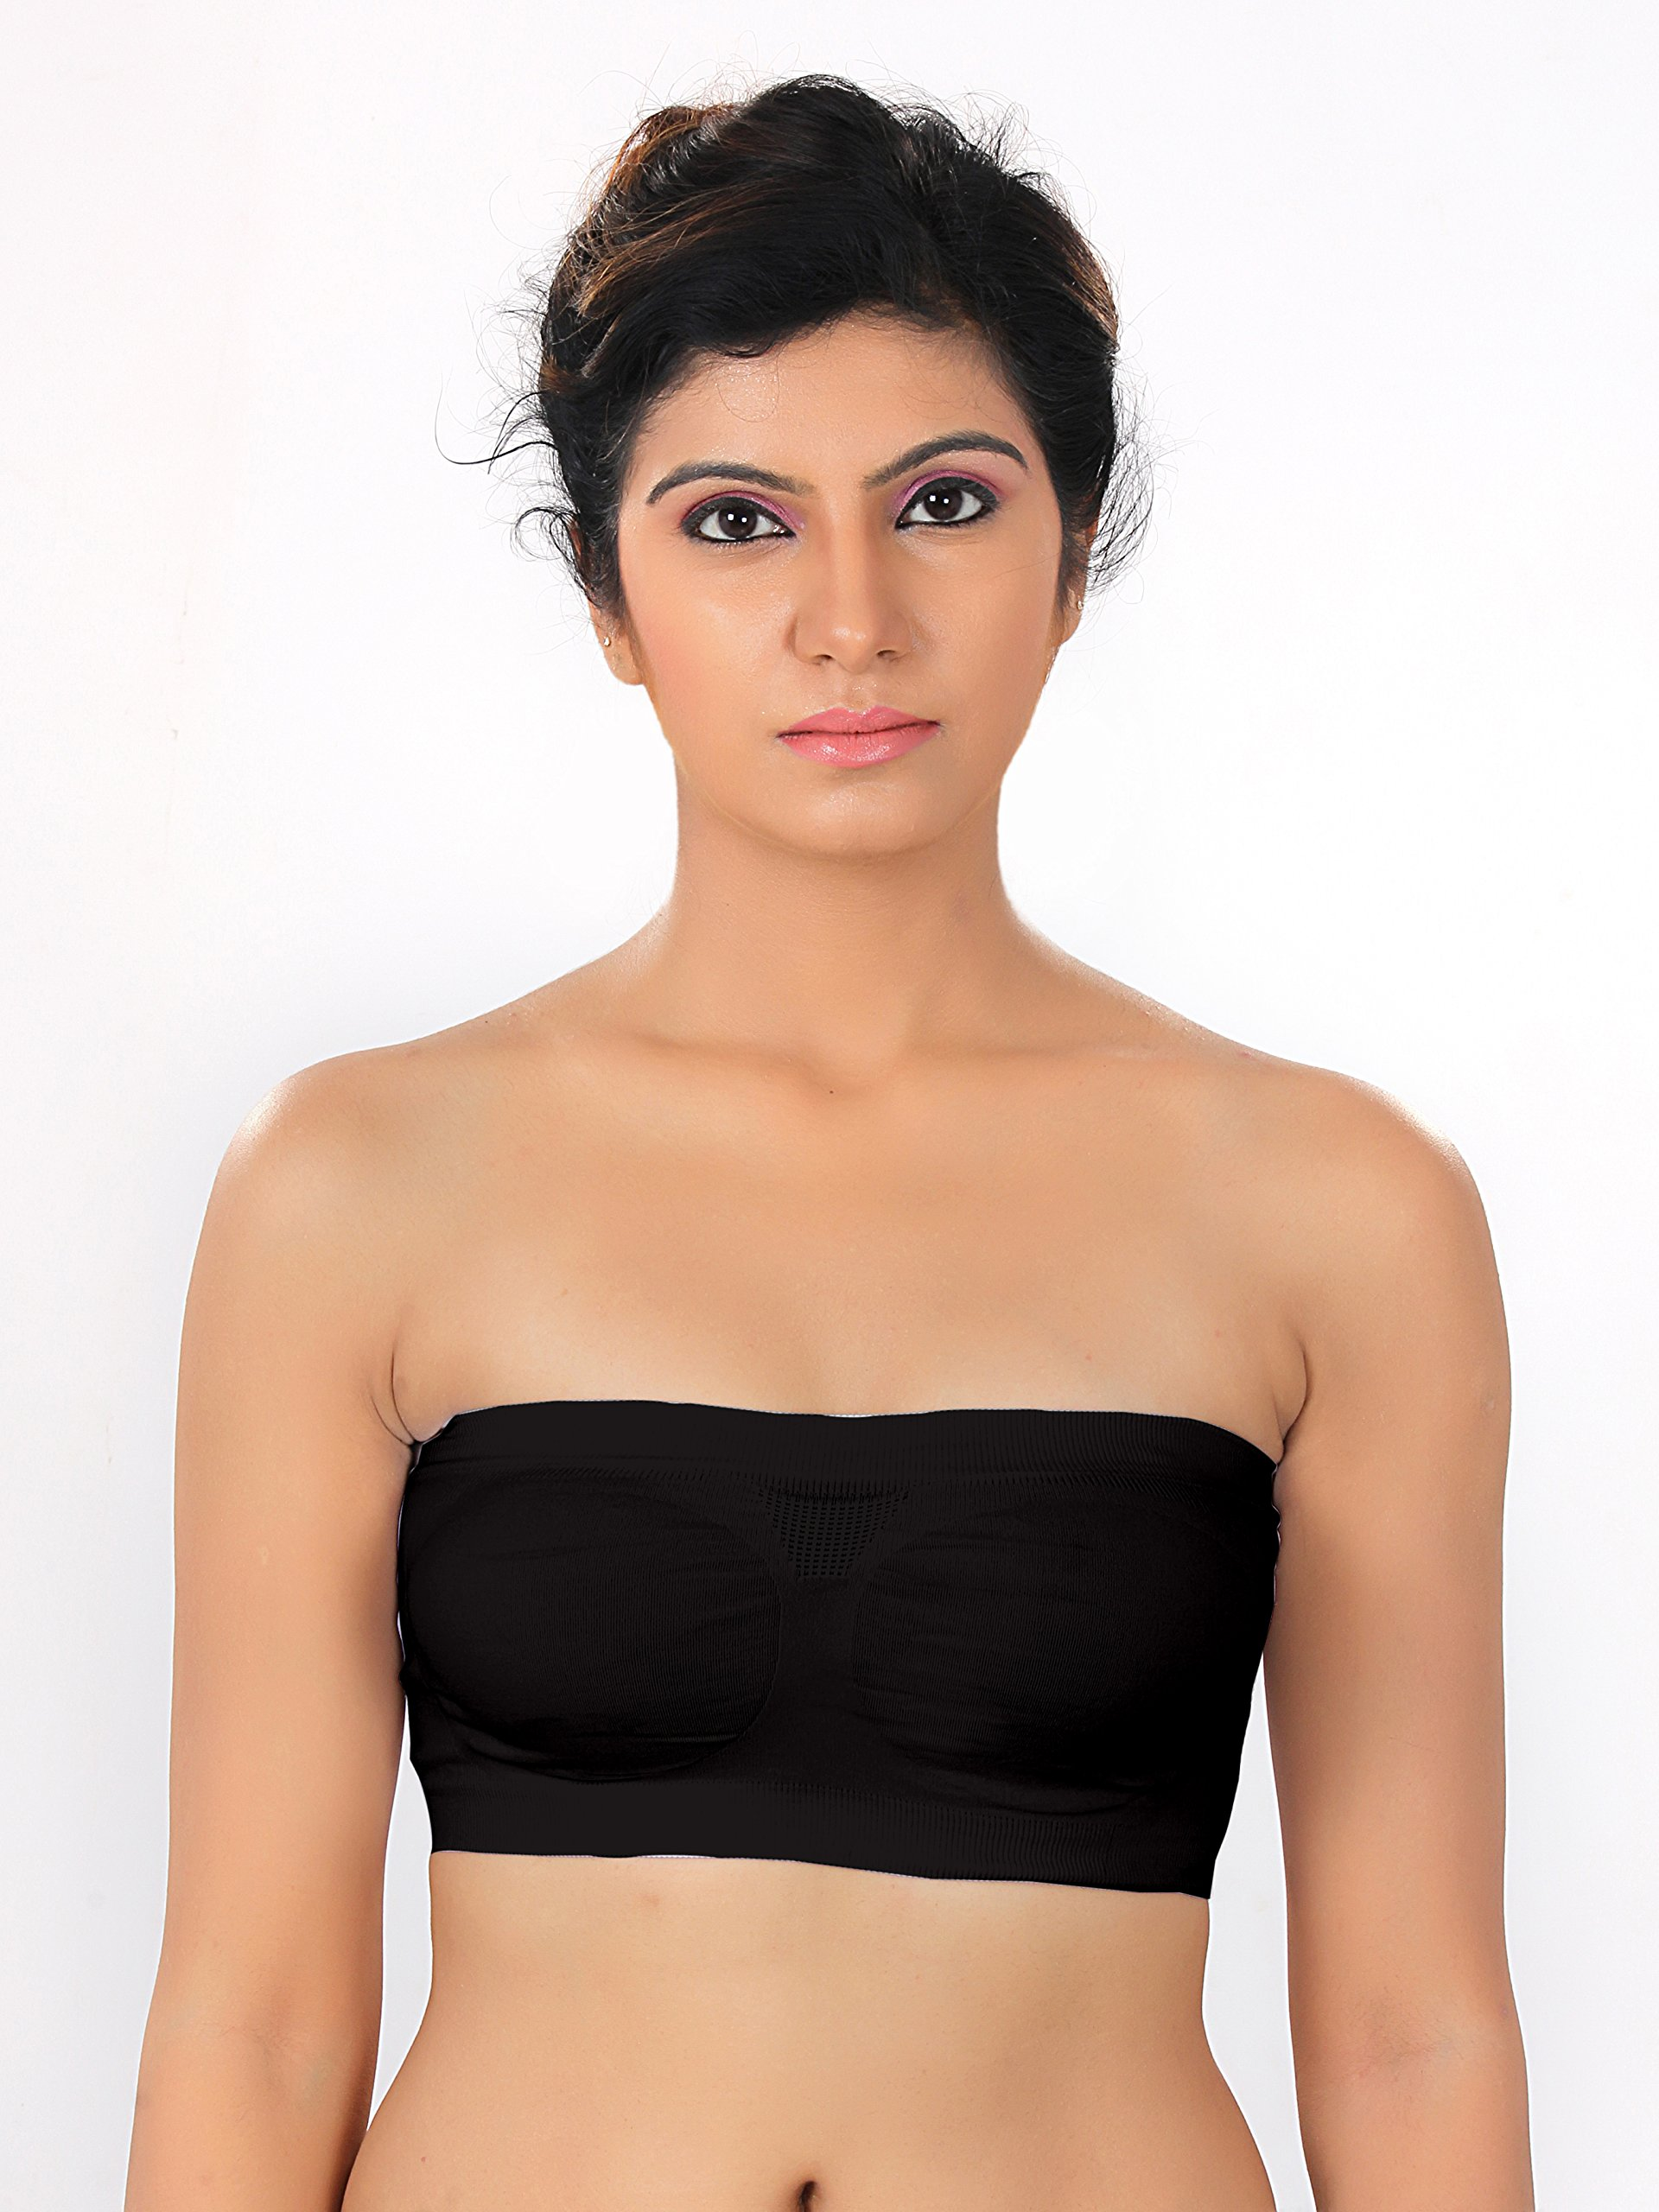 e26b1aabf6 Shop Online with wide range of Lingerie